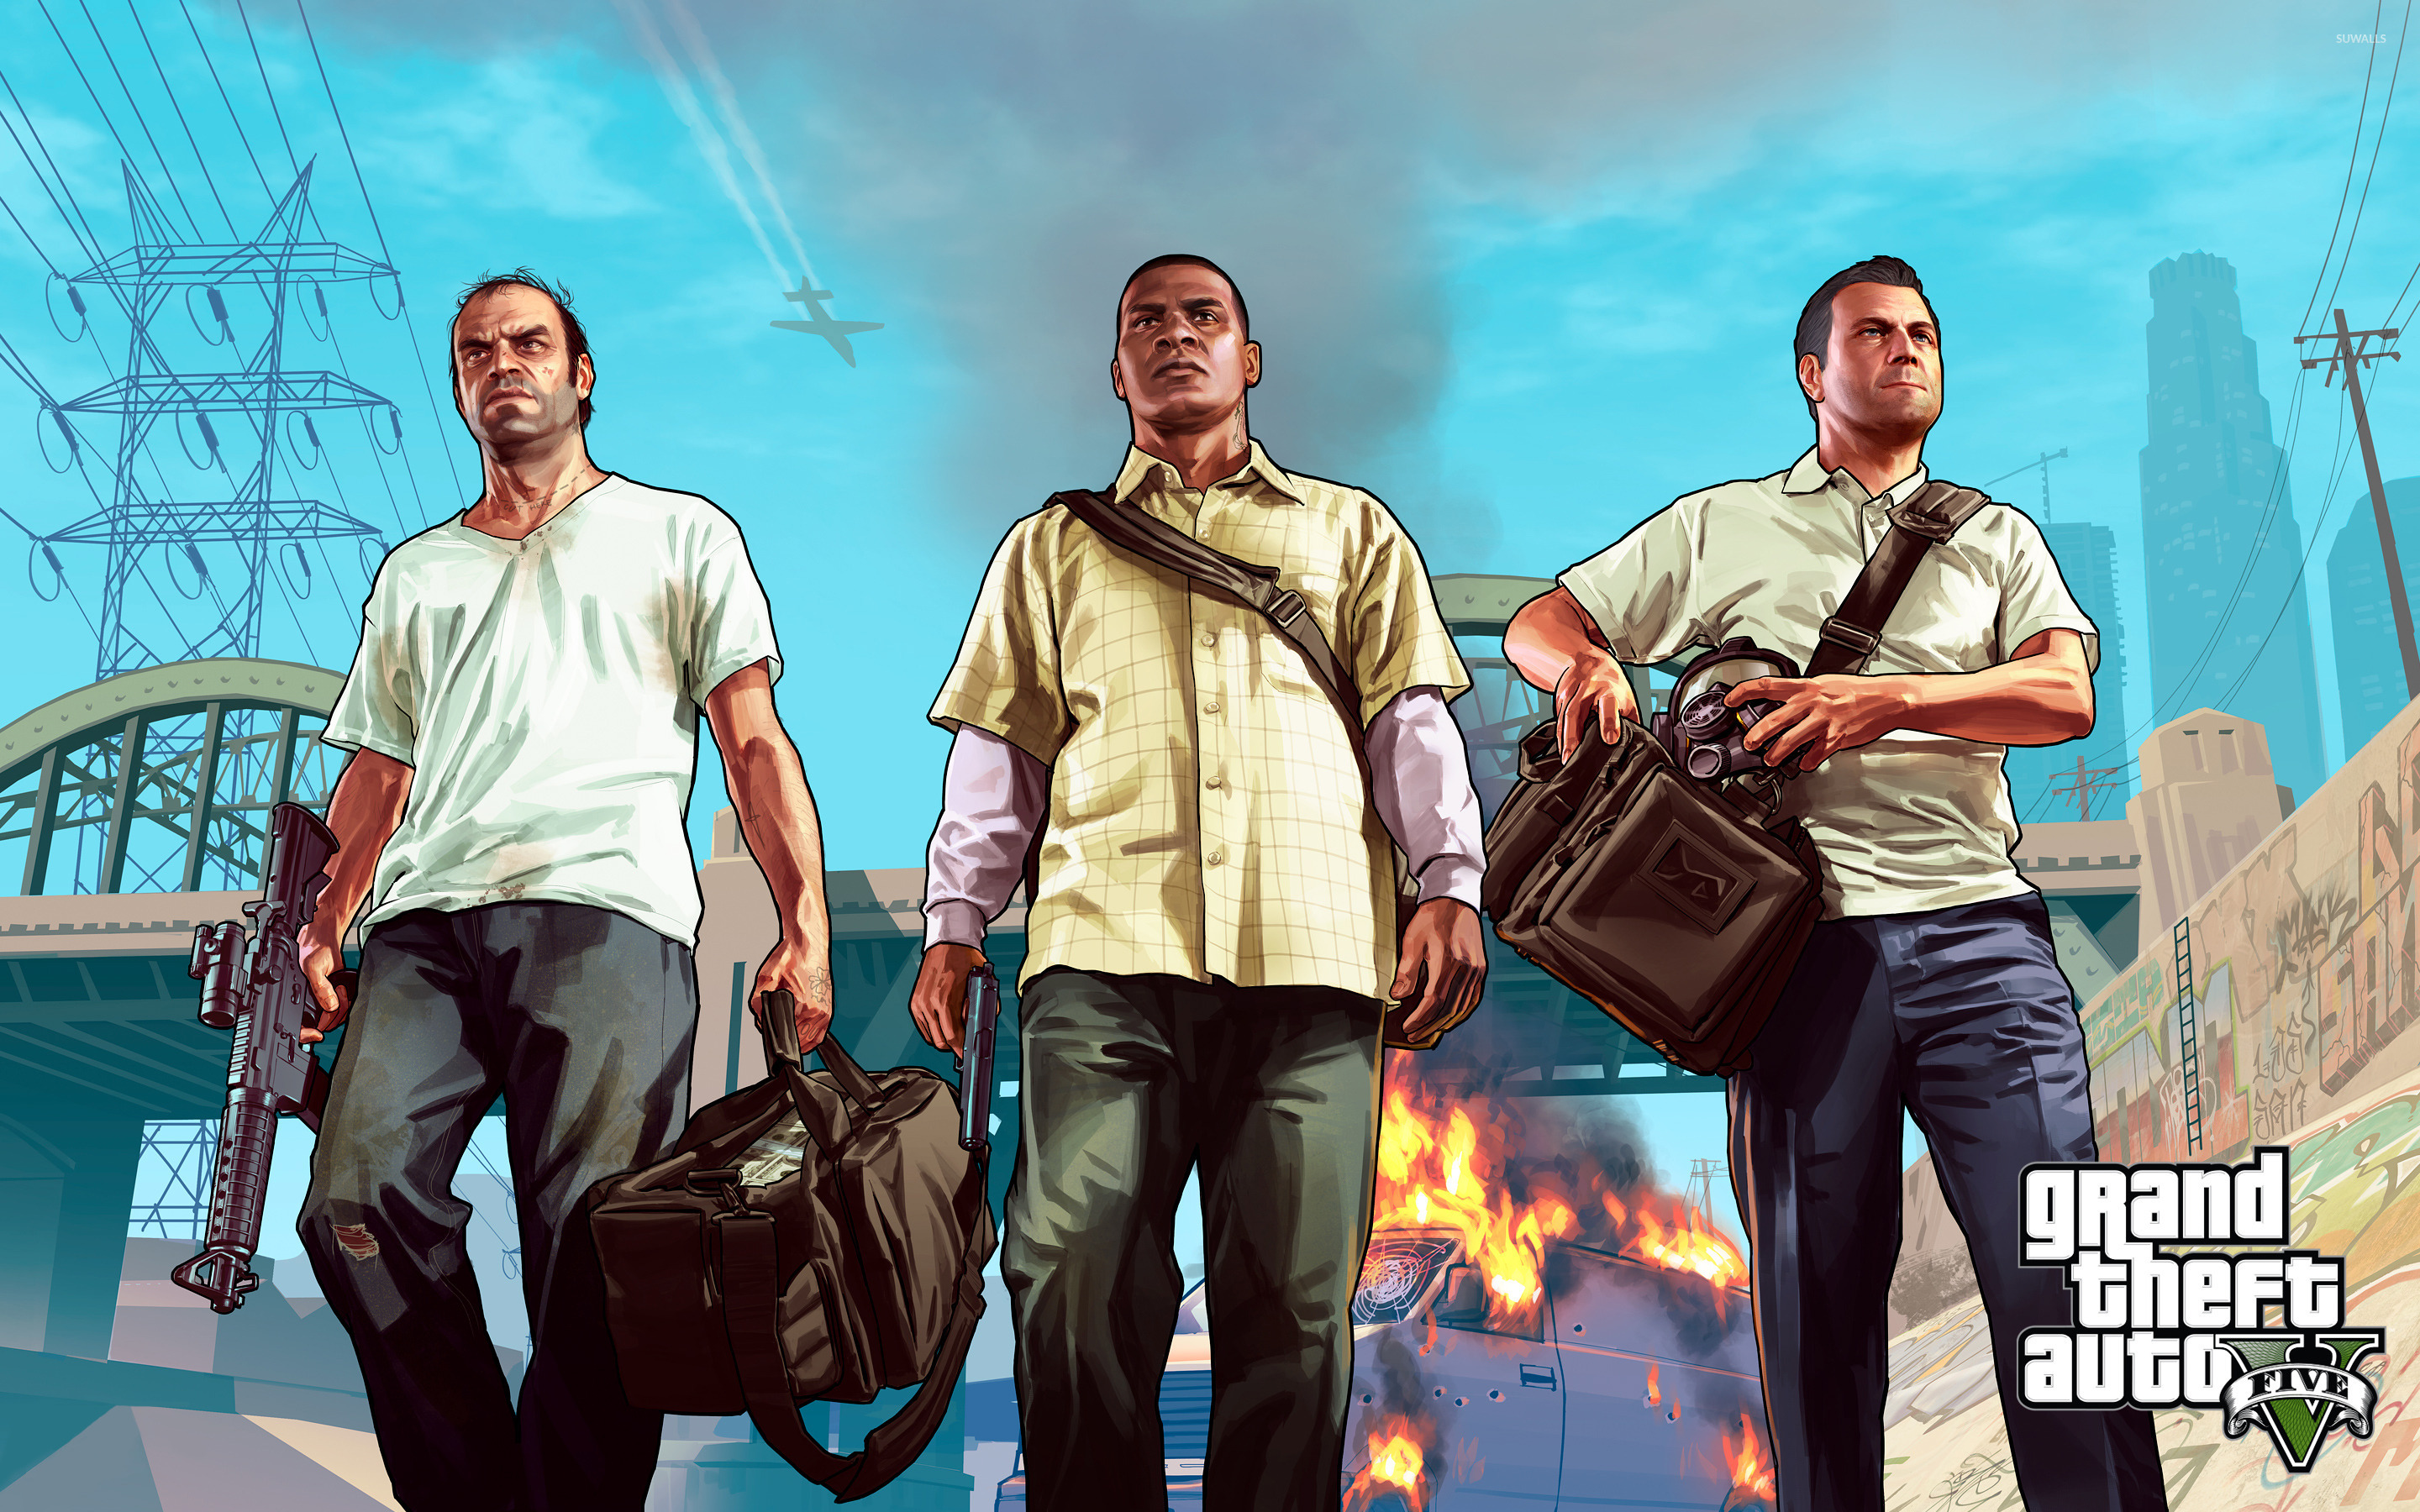 Grand Theft Auto V 3 Wallpaper Game Wallpapers 16892